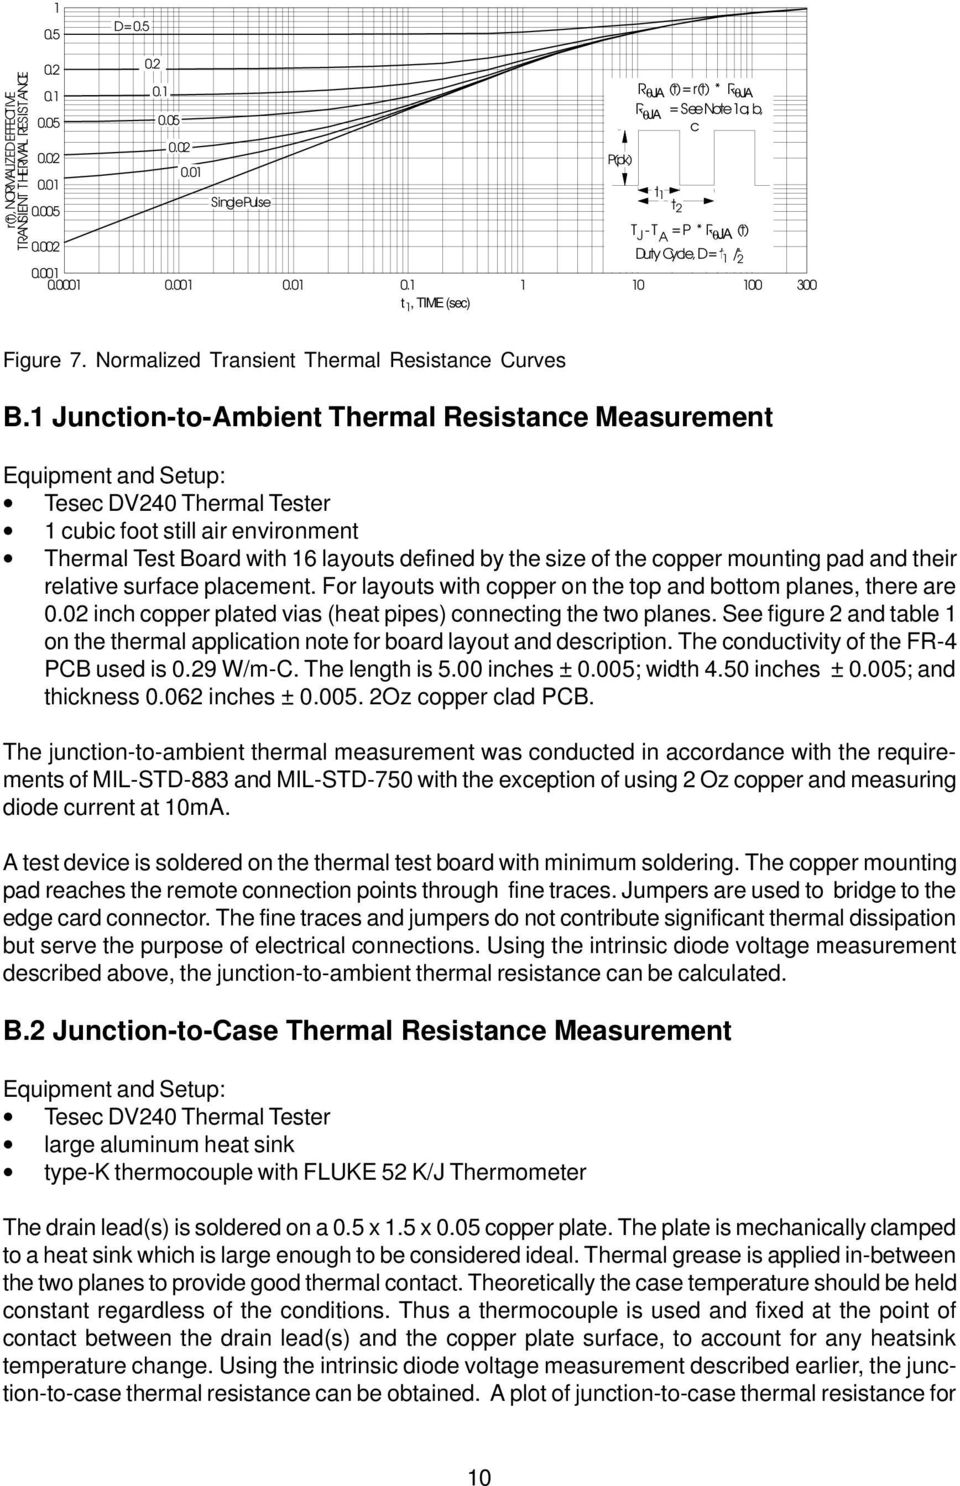 1 Junction-to-Ambient Thermal Resistance Measurement Equipment and Setup: Tesec DV240 Thermal Tester 1 cubic foot still air environment Thermal Test Board with 16 layouts defined by the size of the